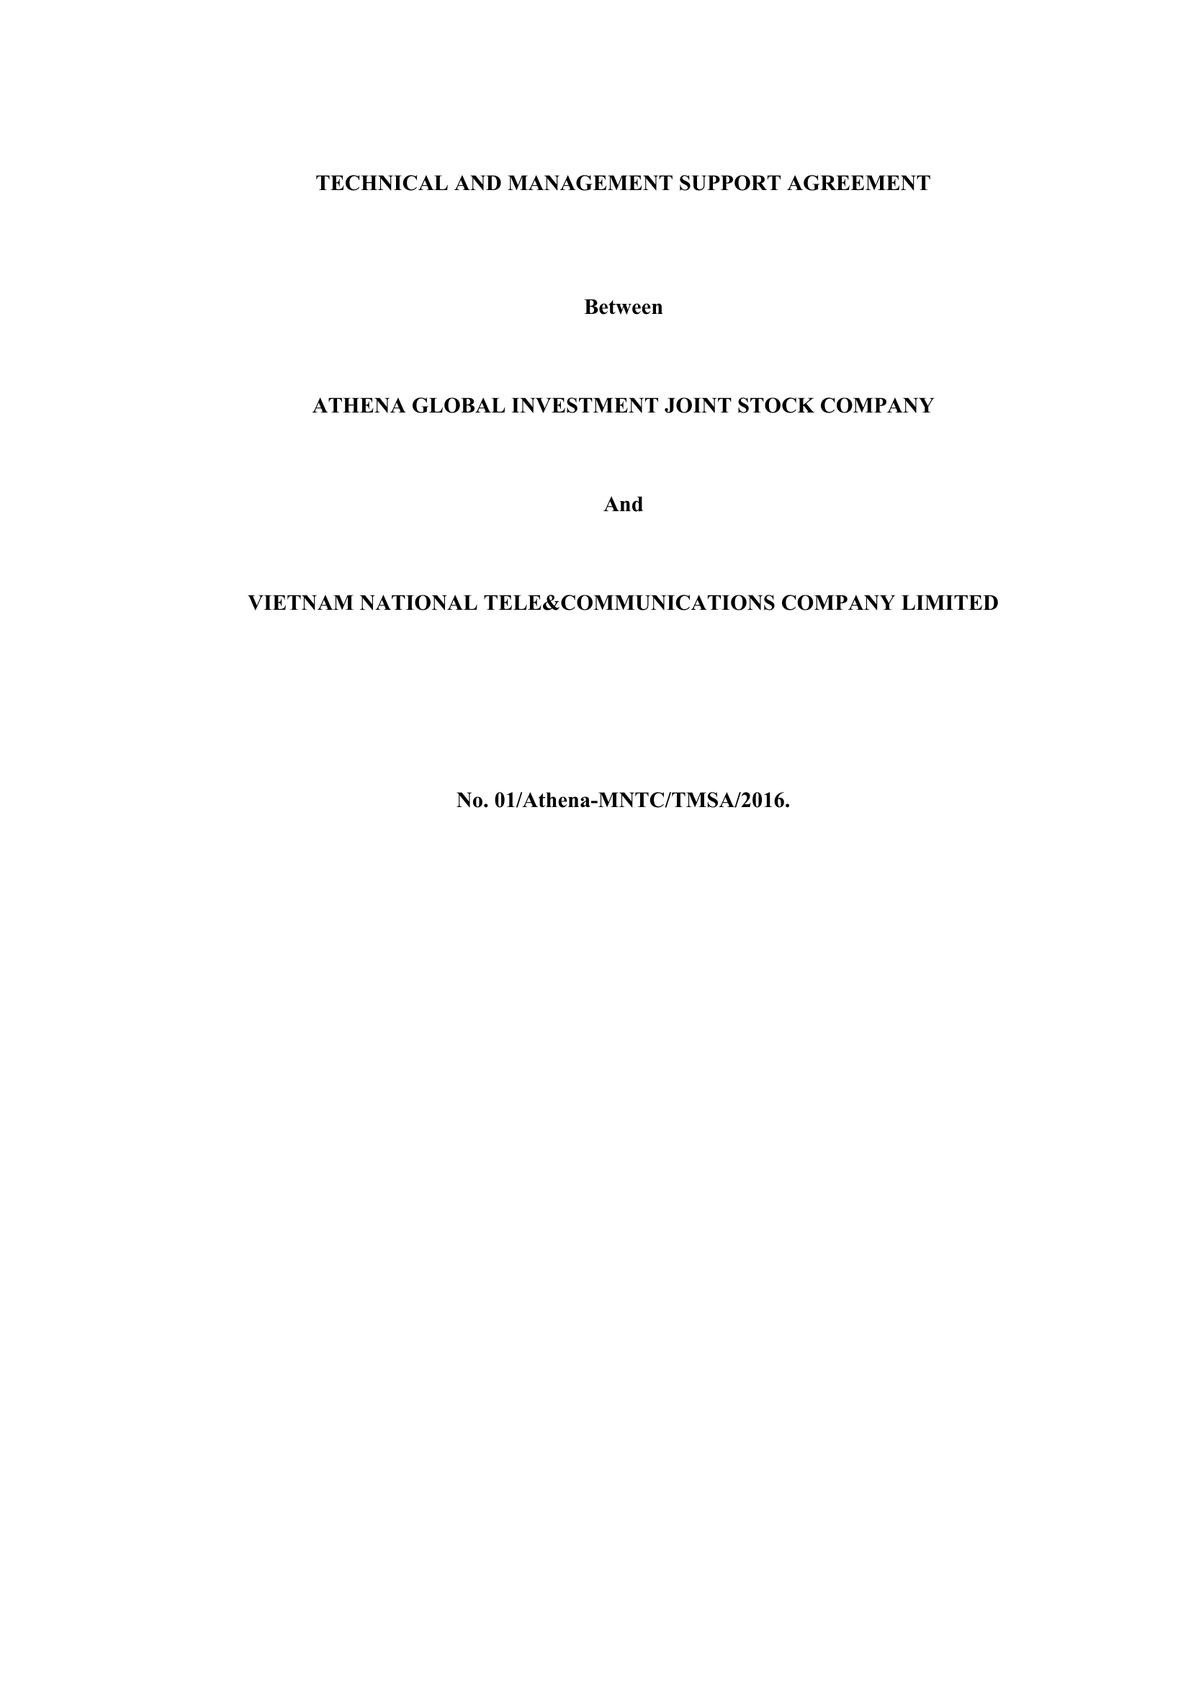 Technical and Management Service Agreement in Telecom -0